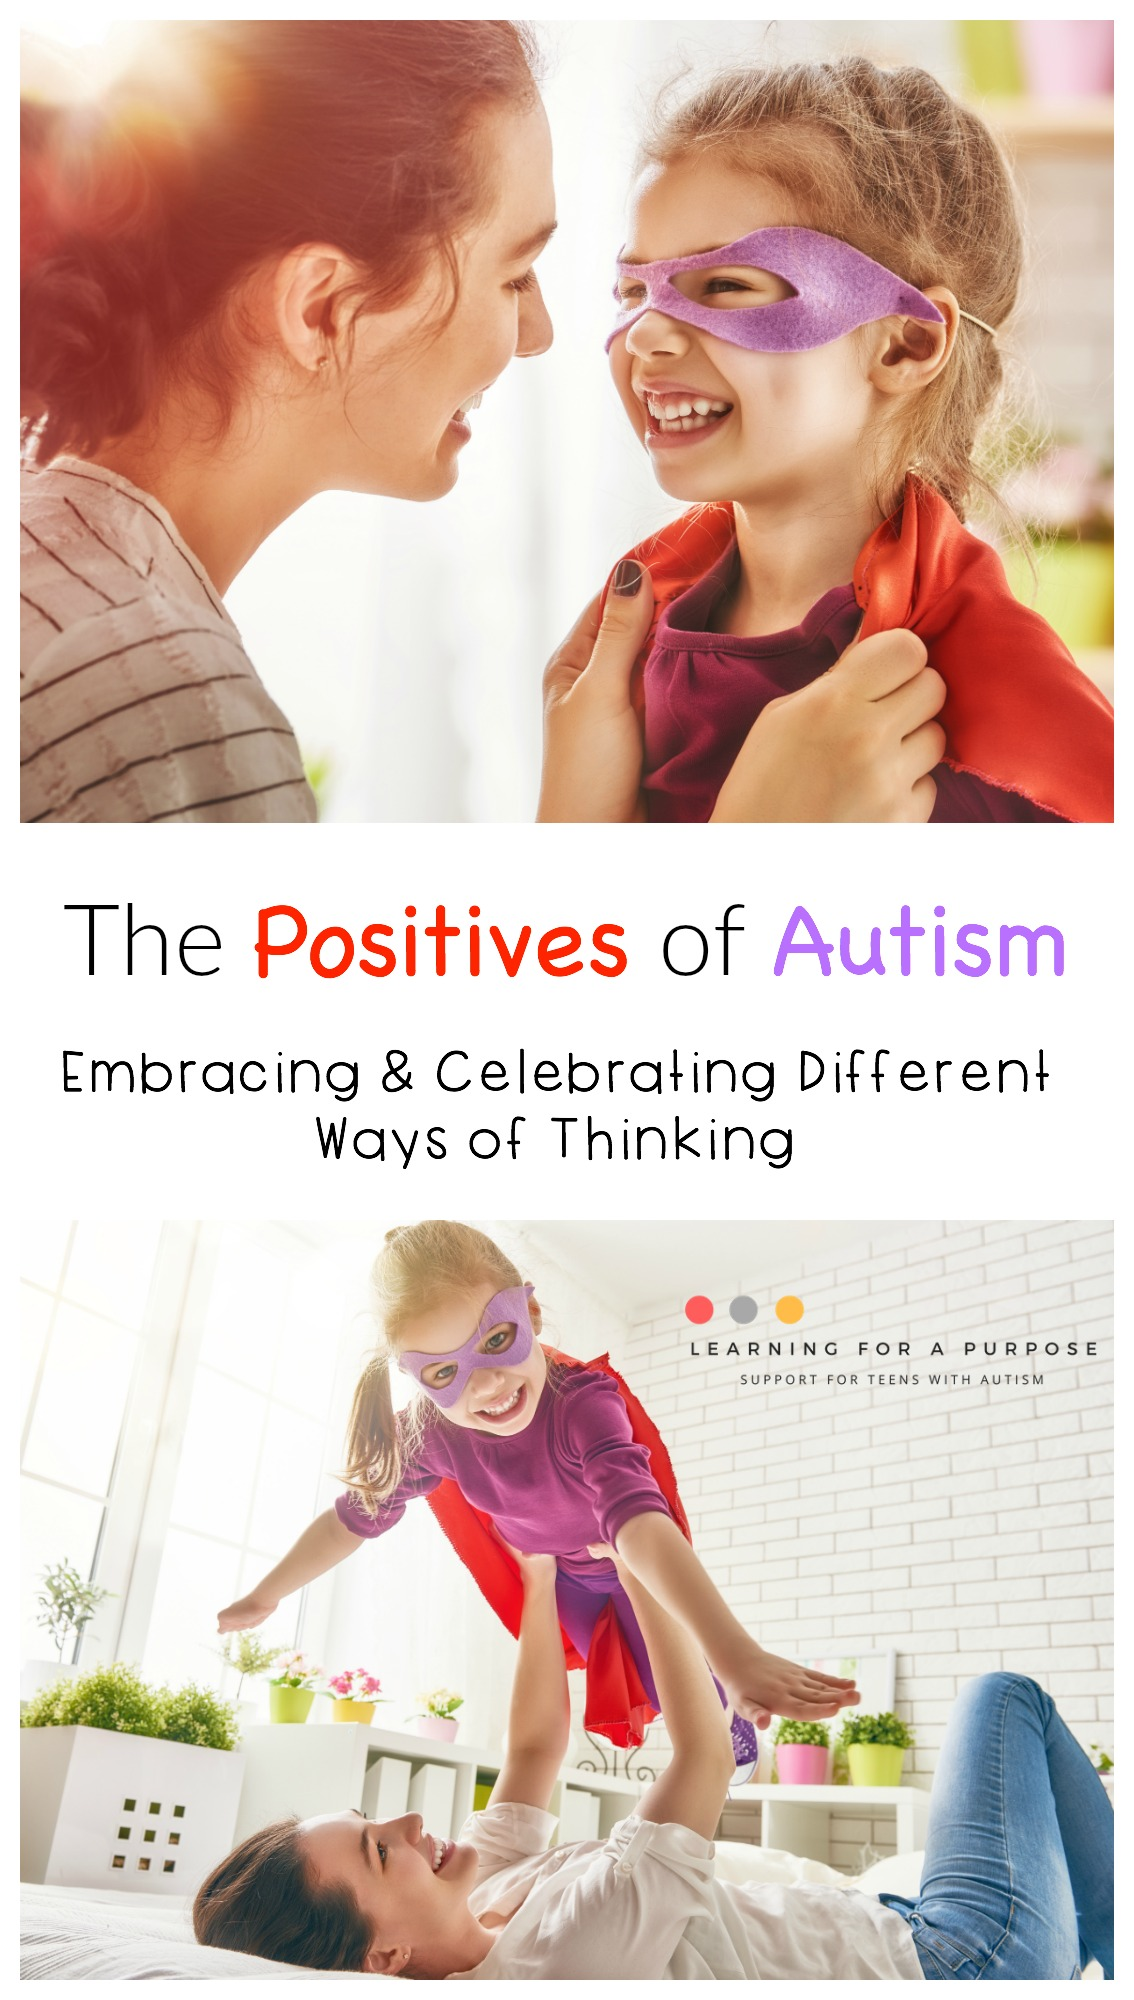 The Positives of Autism